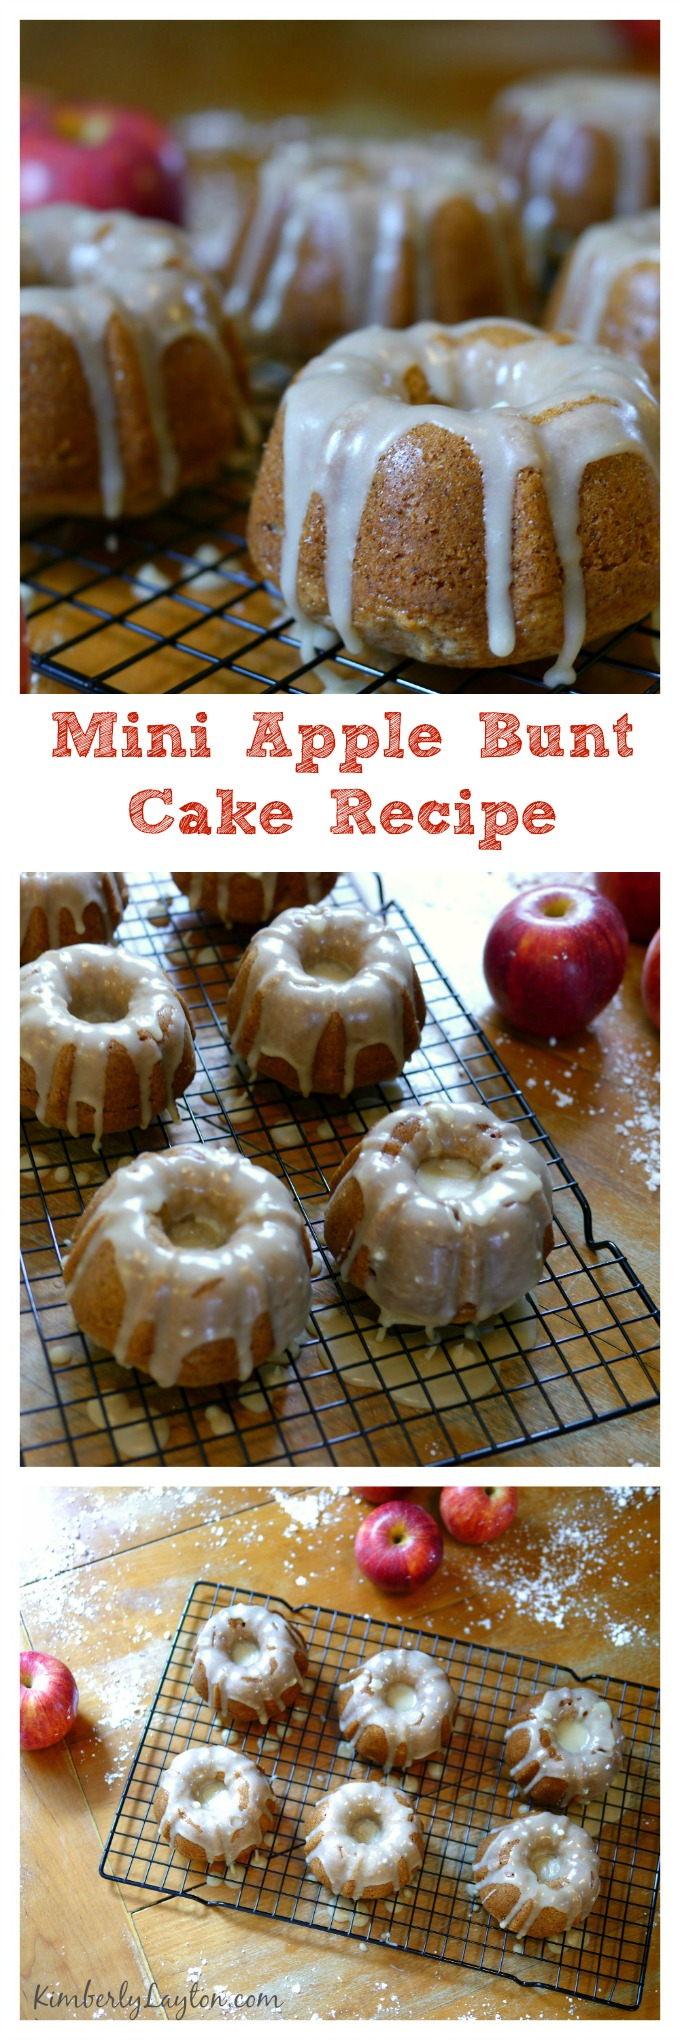 Mini Apple Bundt Cake Recipe on KimberlyLayton.com